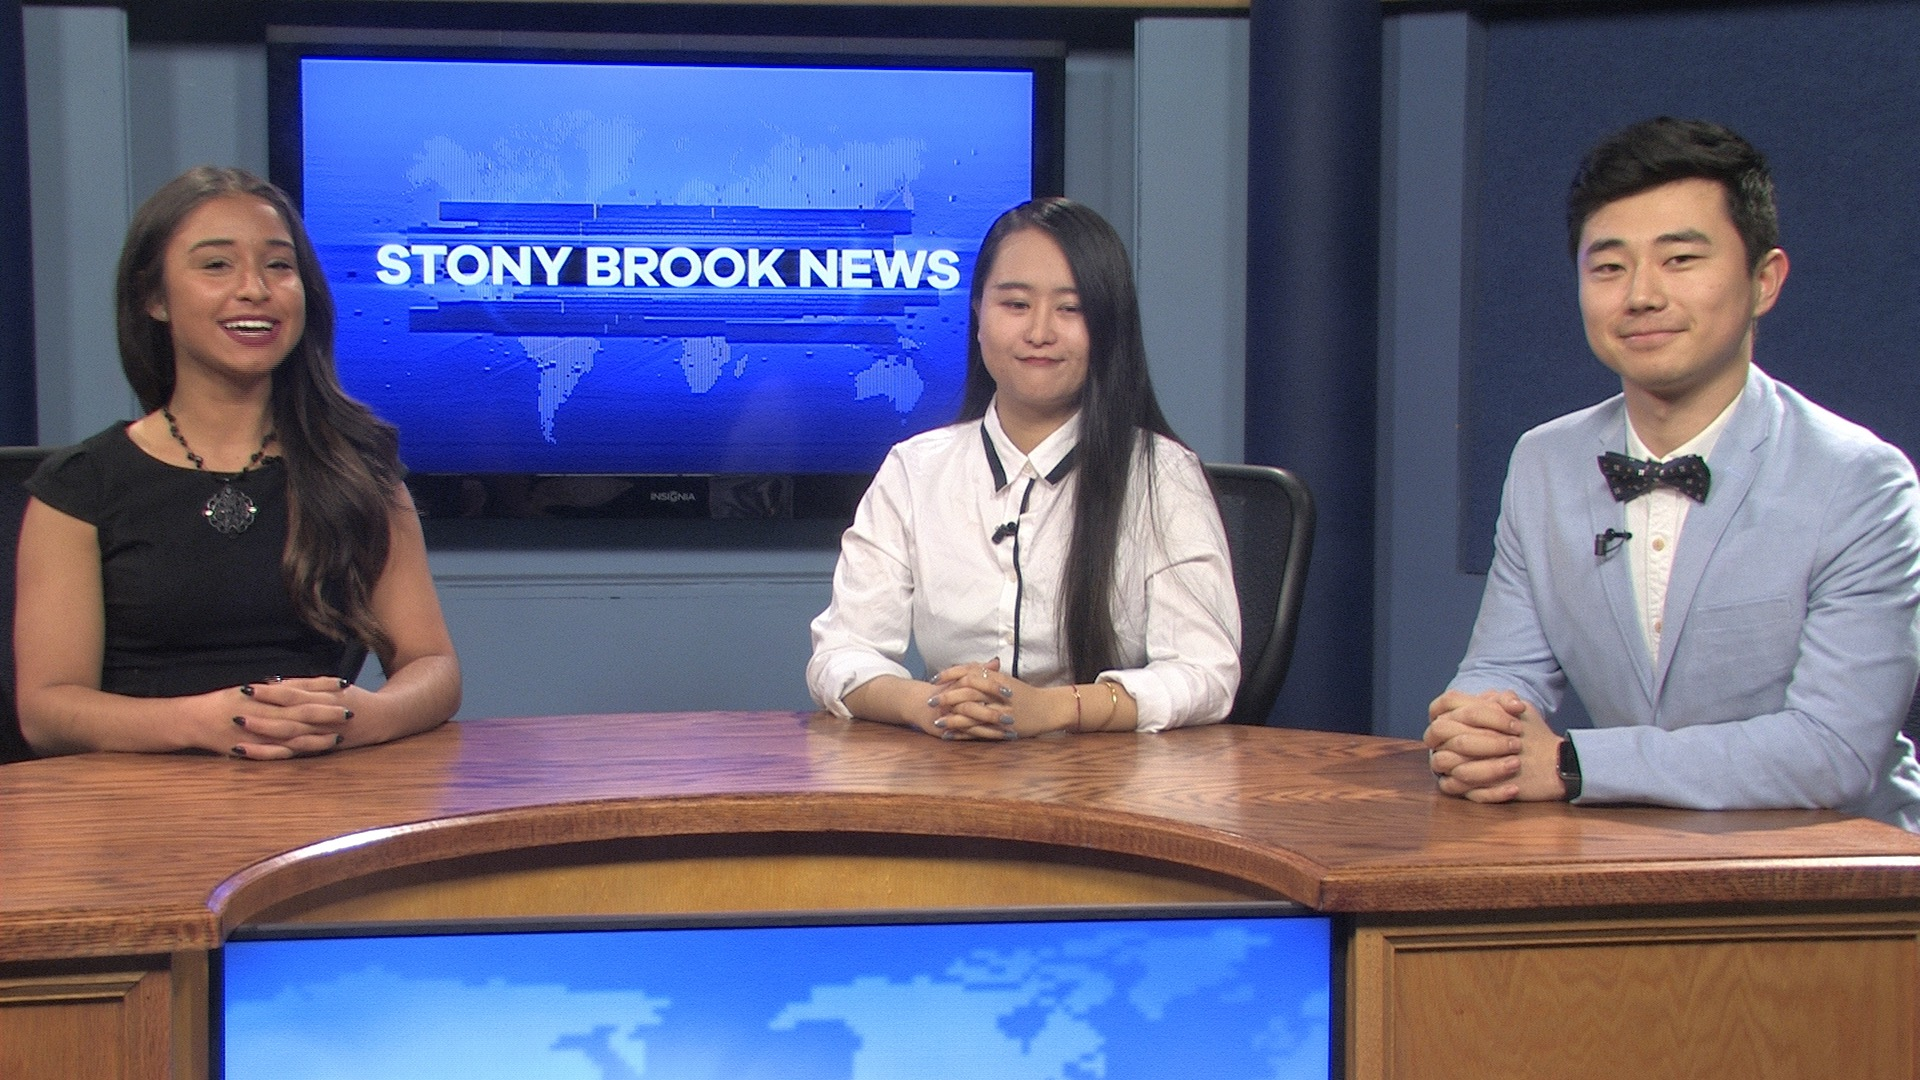 Stony Brook News – February 12, 2018